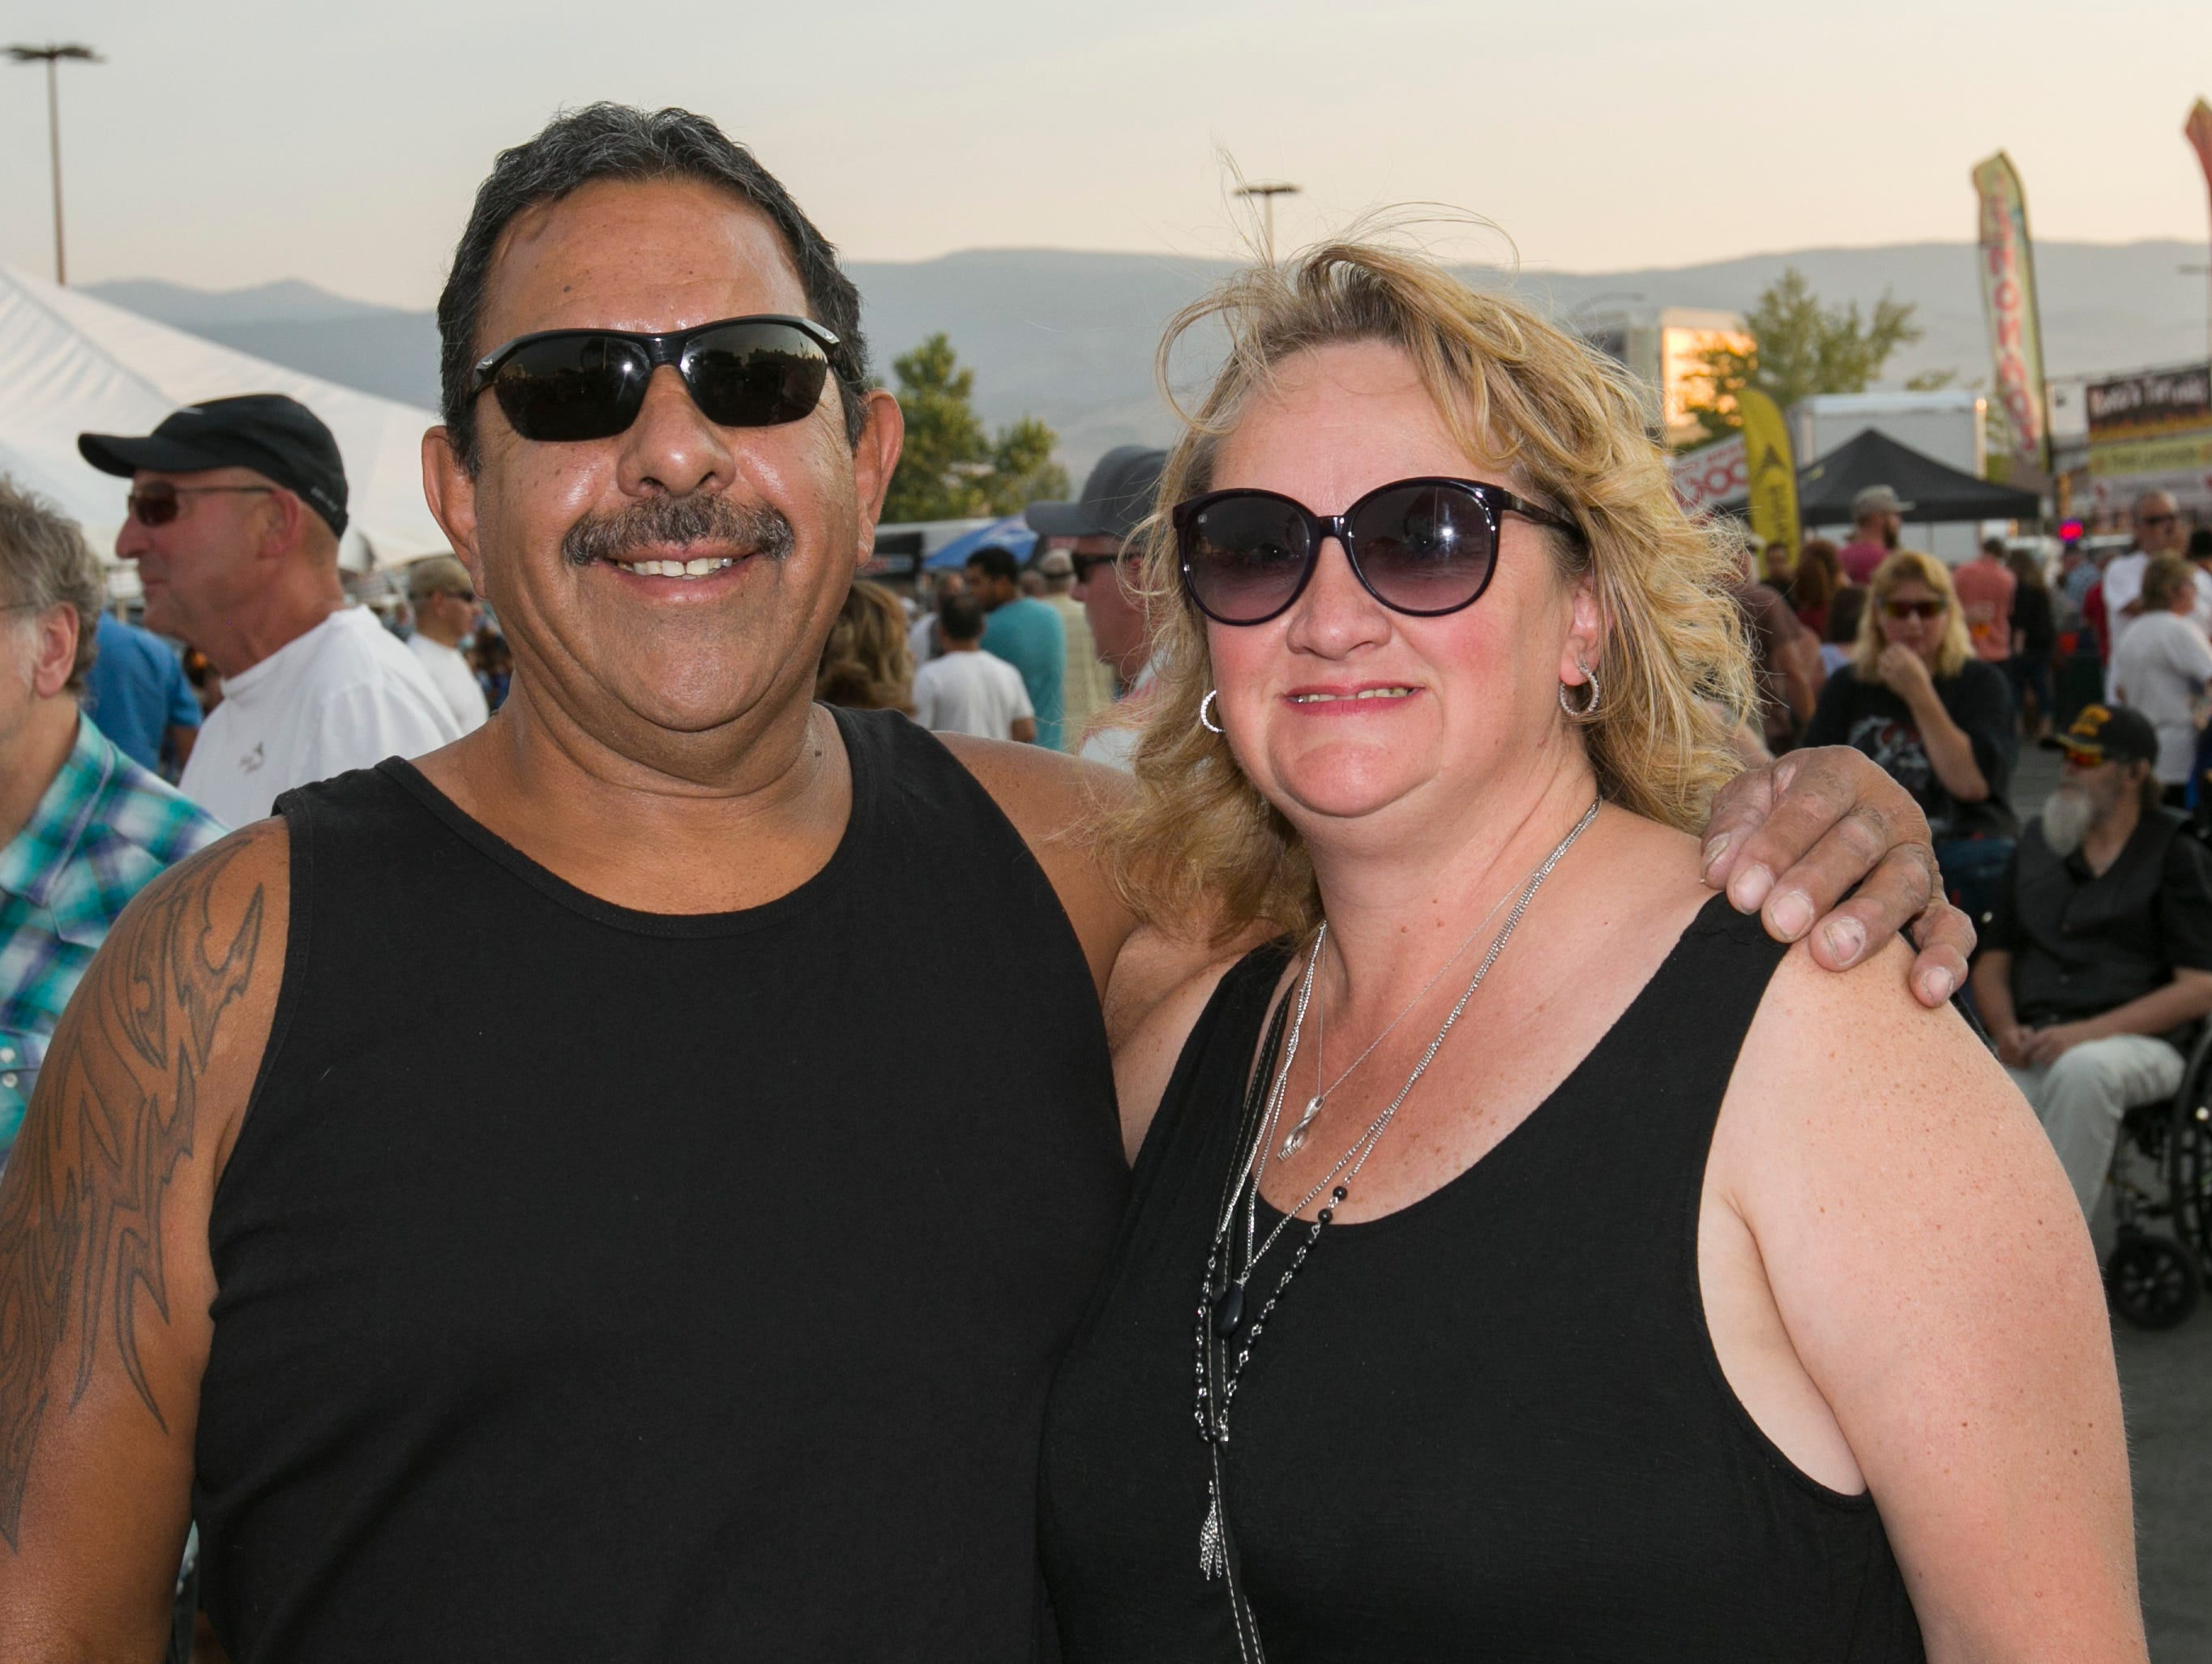 Marty and Julie during the Starship Concert during Hot August Nights at the Grand Sierra Resort on Friday, August 10, 2018.